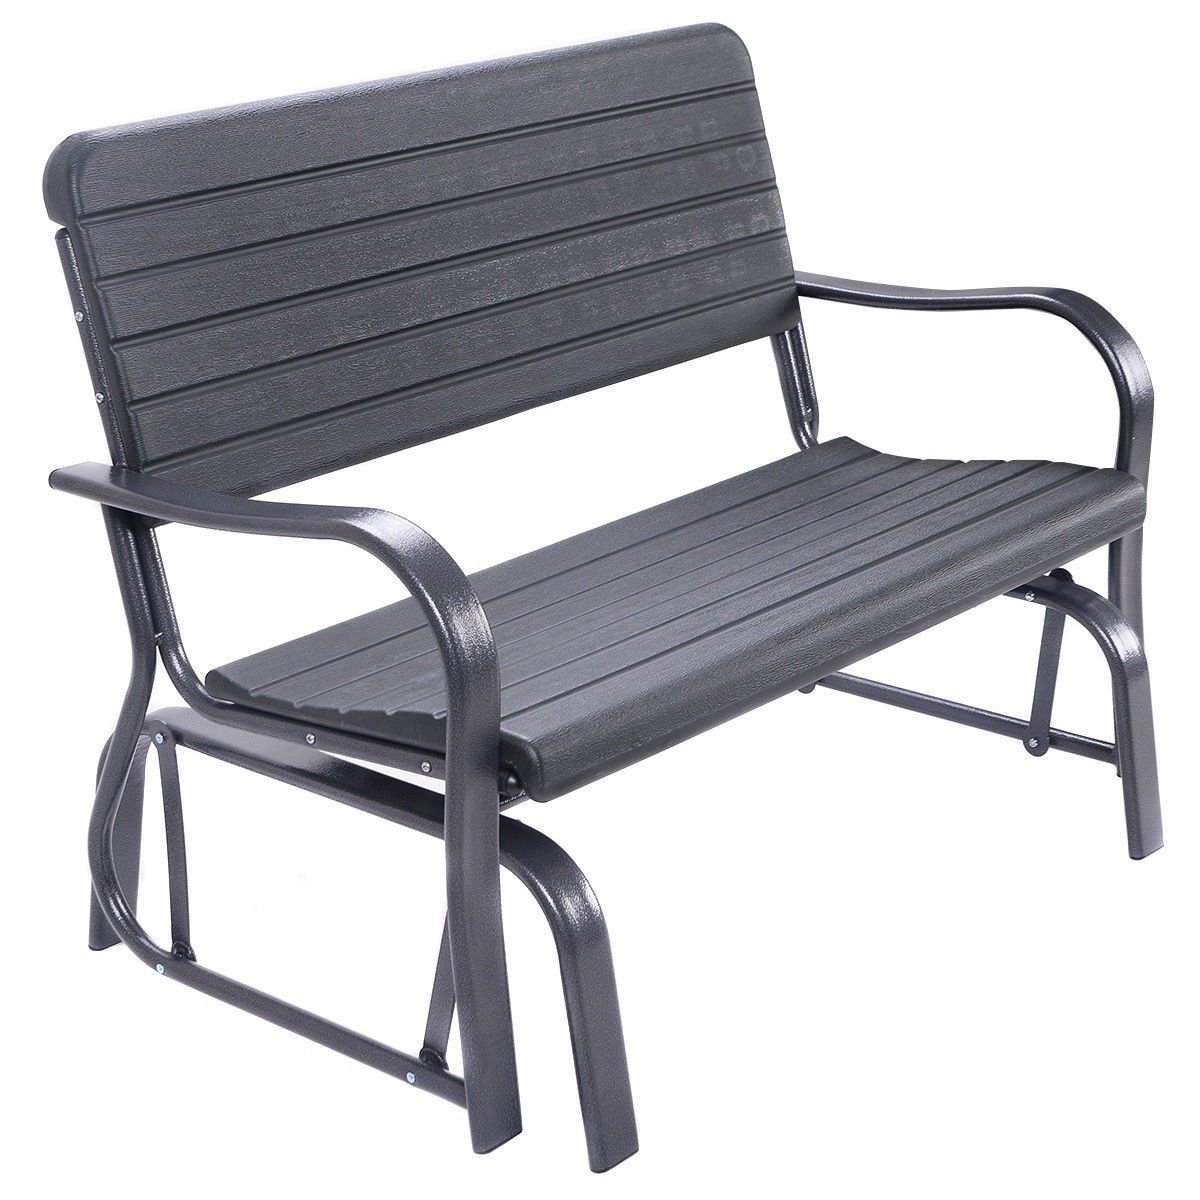 Outdoor Patio Swing Porch Rocker Glider Loveseat Garden Seat Steel Bench US .#GG4346 43ETR98-Y159419